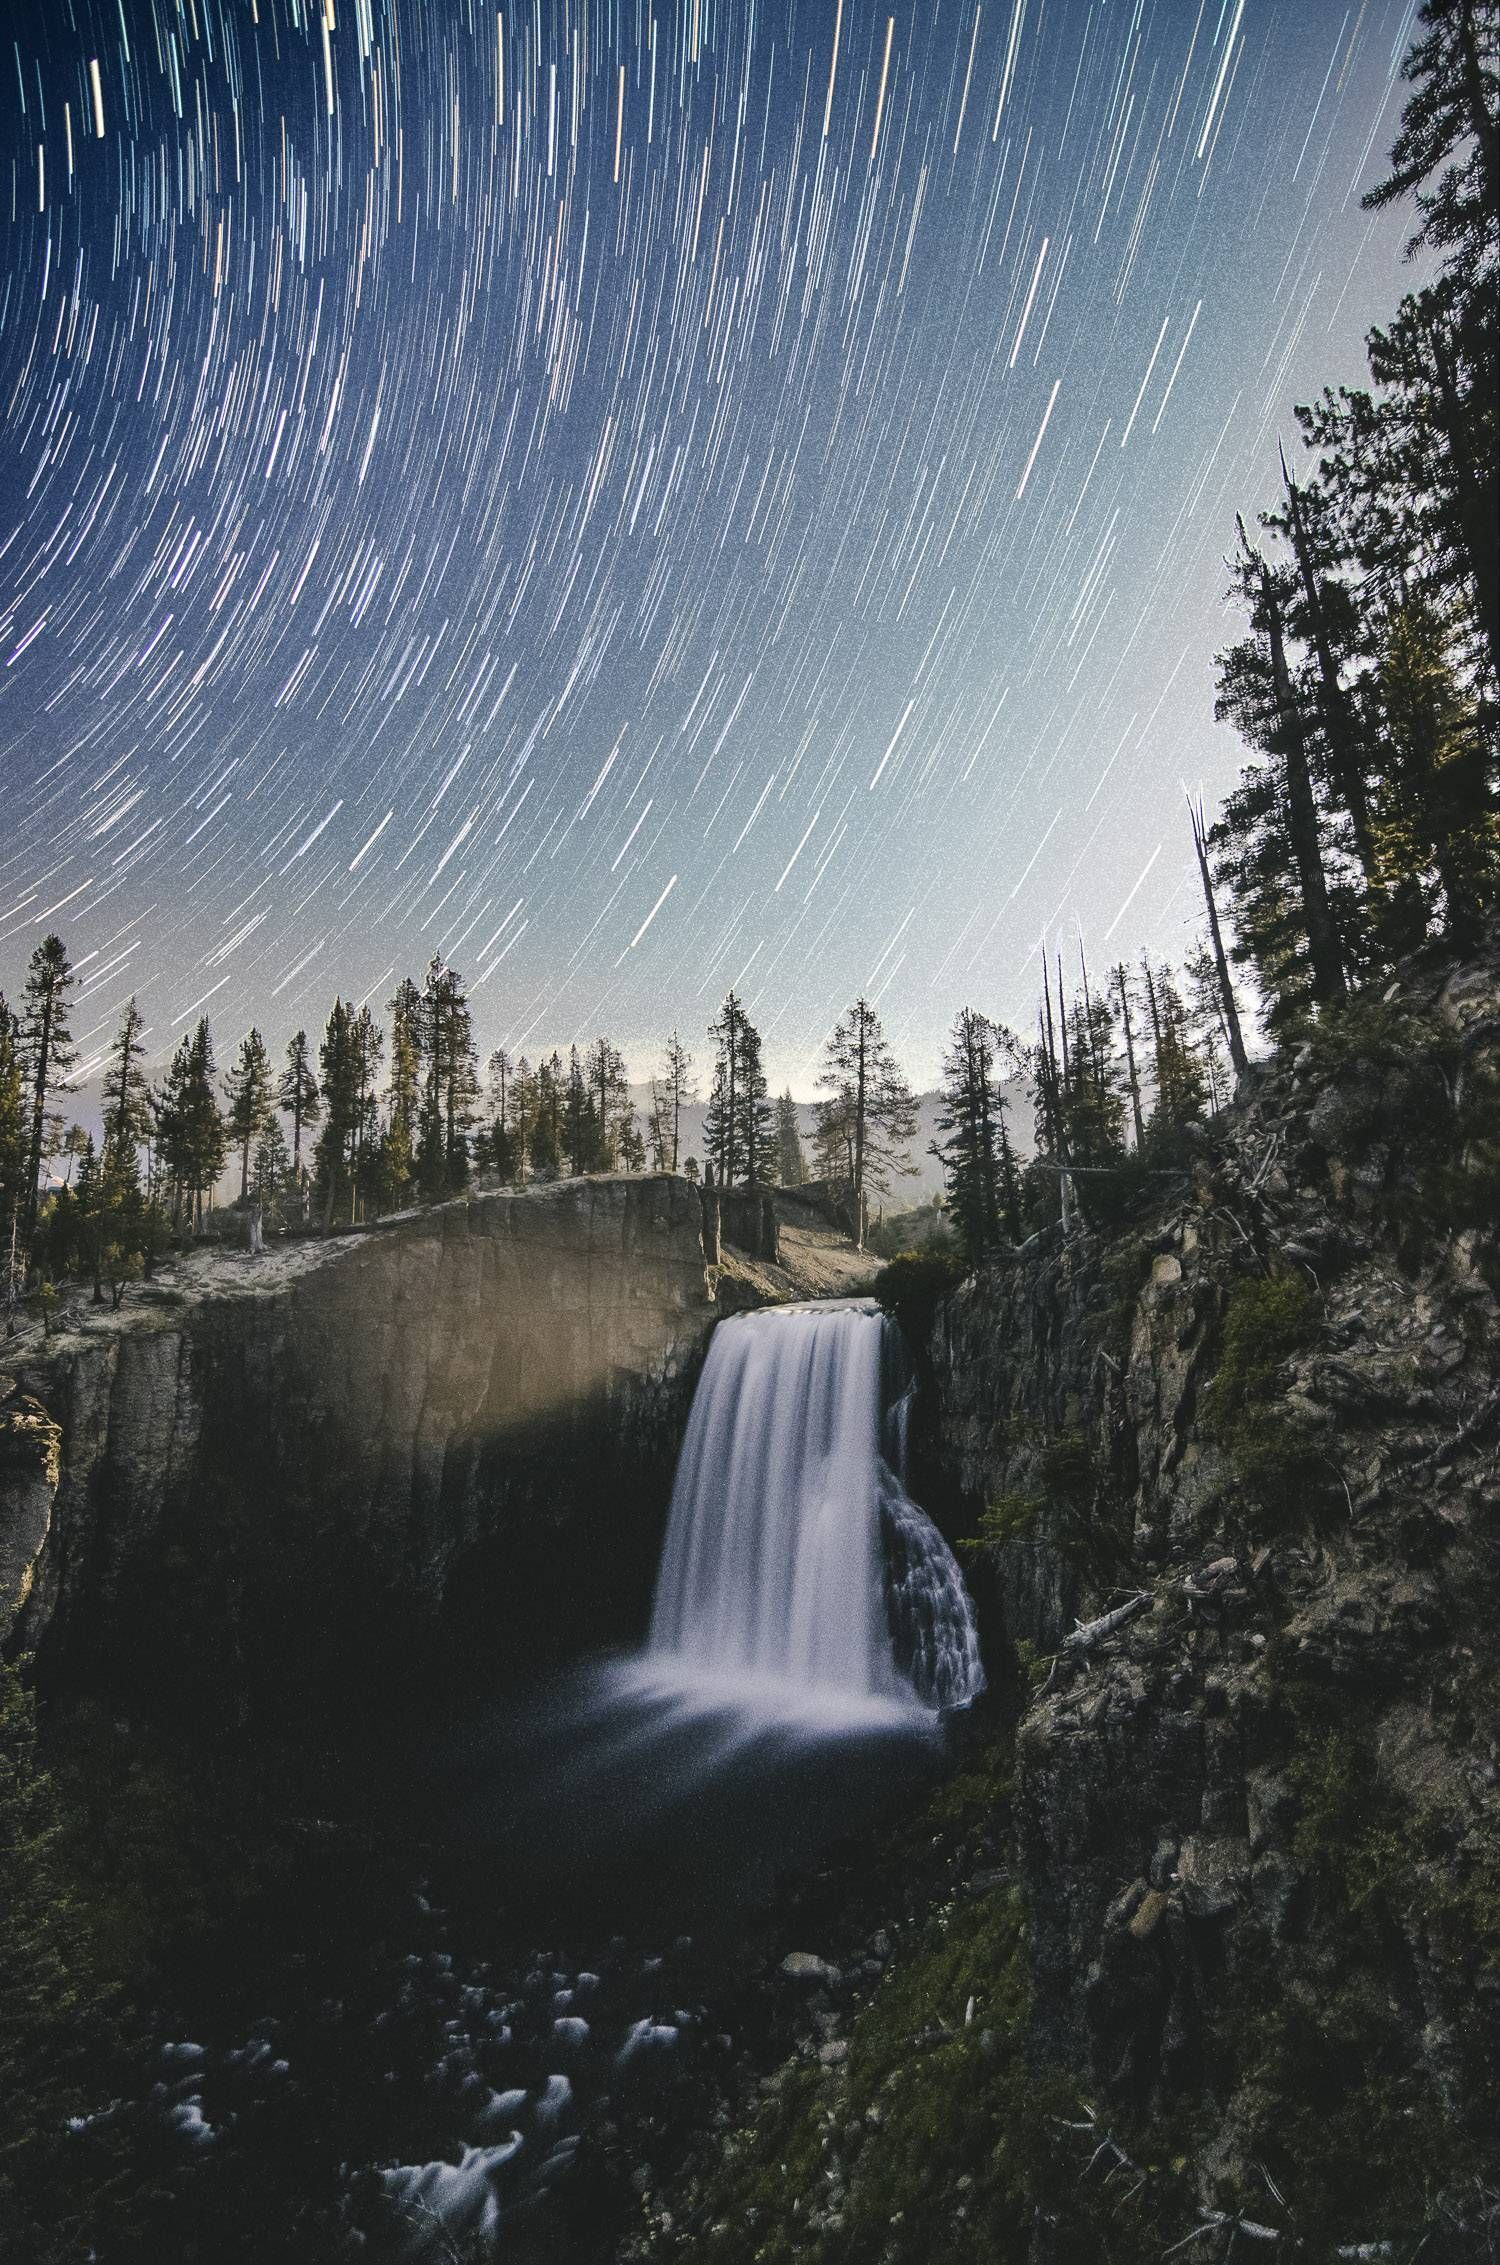 I had been here almost a dozen times before but never under the stars. I was missing out. Rainbow Falls Mammoth Lakes CA (OC) [1500x2265] #rainbowfalls I had been here almost a dozen times before but never under the stars. I was missing out. Rainbow Falls Mammoth Lakes CA (OC) [1500x2265] #rainbowfalls I had been here almost a dozen times before but never under the stars. I was missing out. Rainbow Falls Mammoth Lakes CA (OC) [1500x2265] #rainbowfalls I had been here almost a dozen times before #rainbowfalls